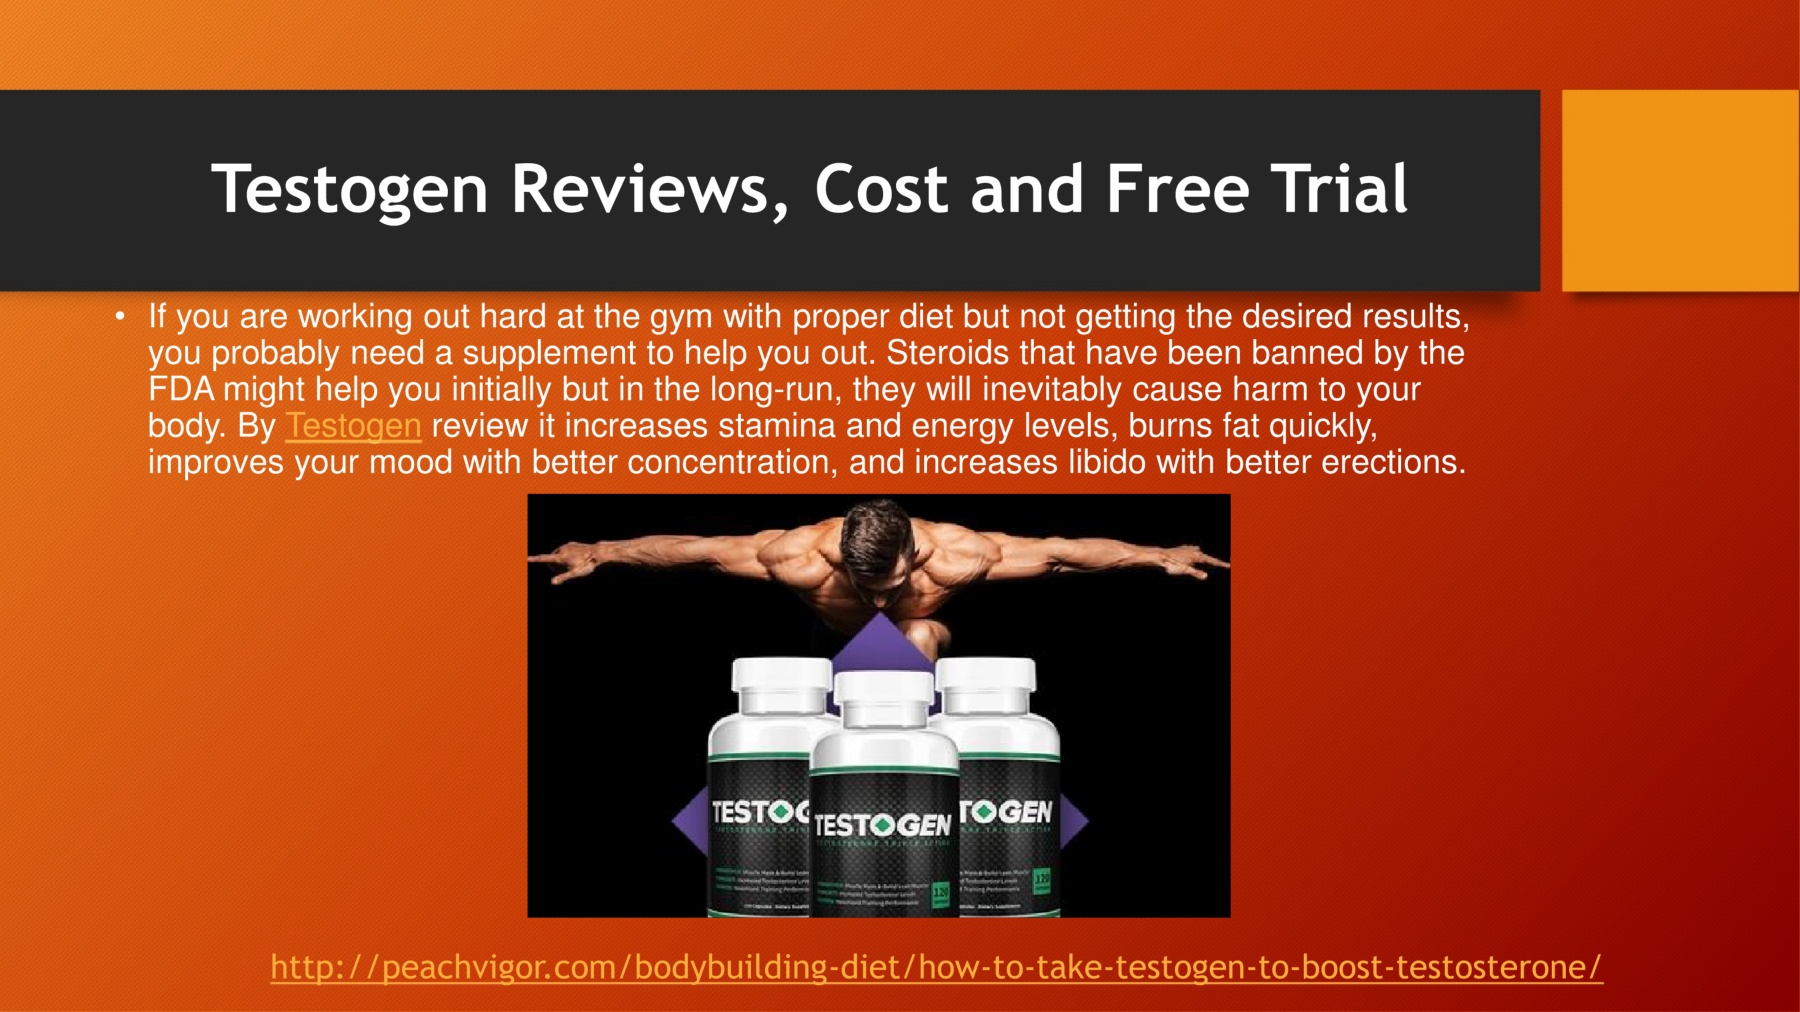 Testogen Reviews, Cost and Free Trial Pages 1 - 1 - Text Version